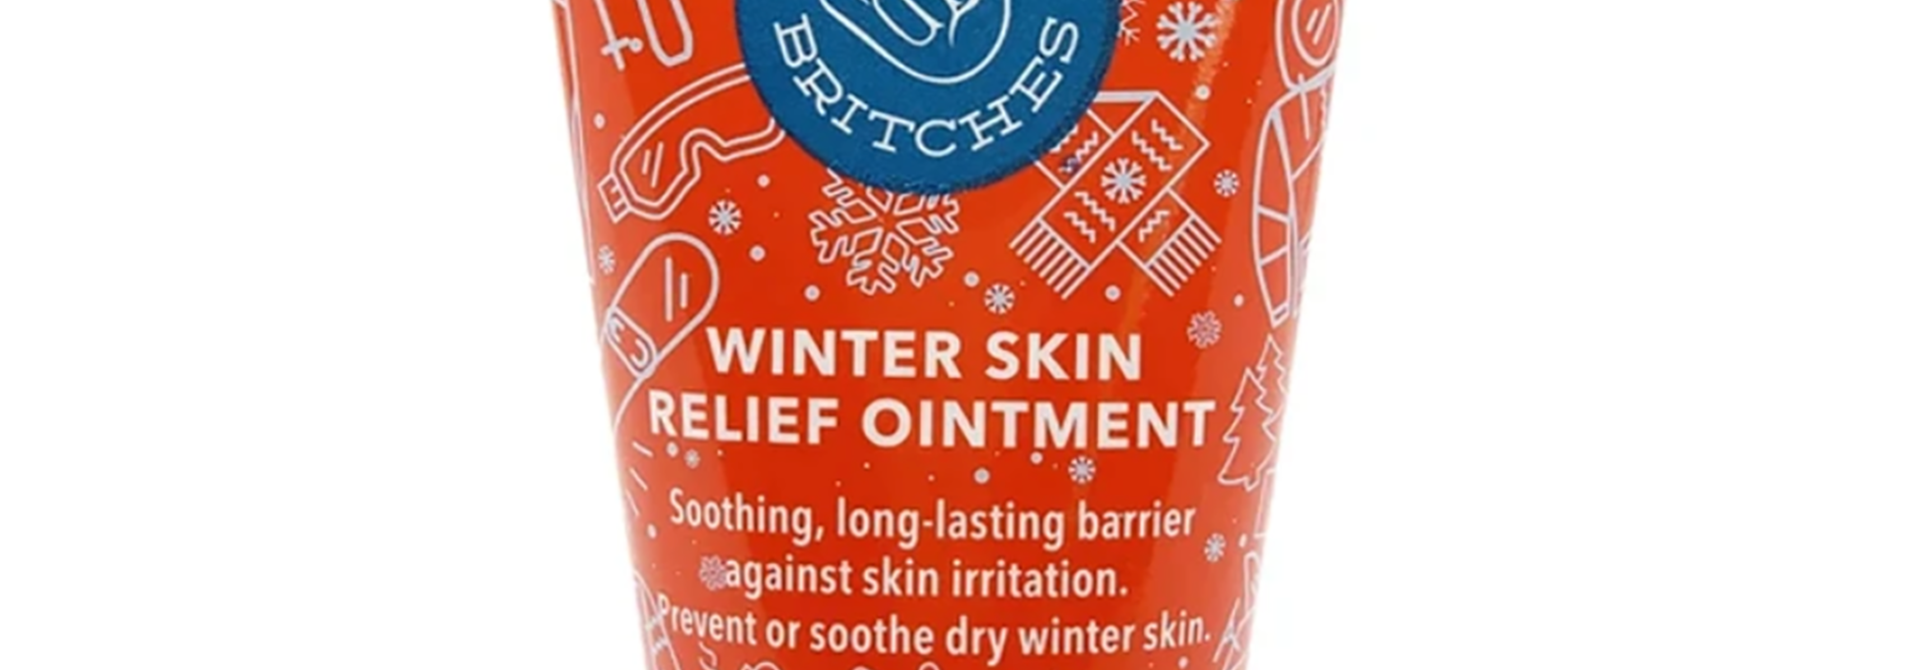 Winter Skin Relief Ointment